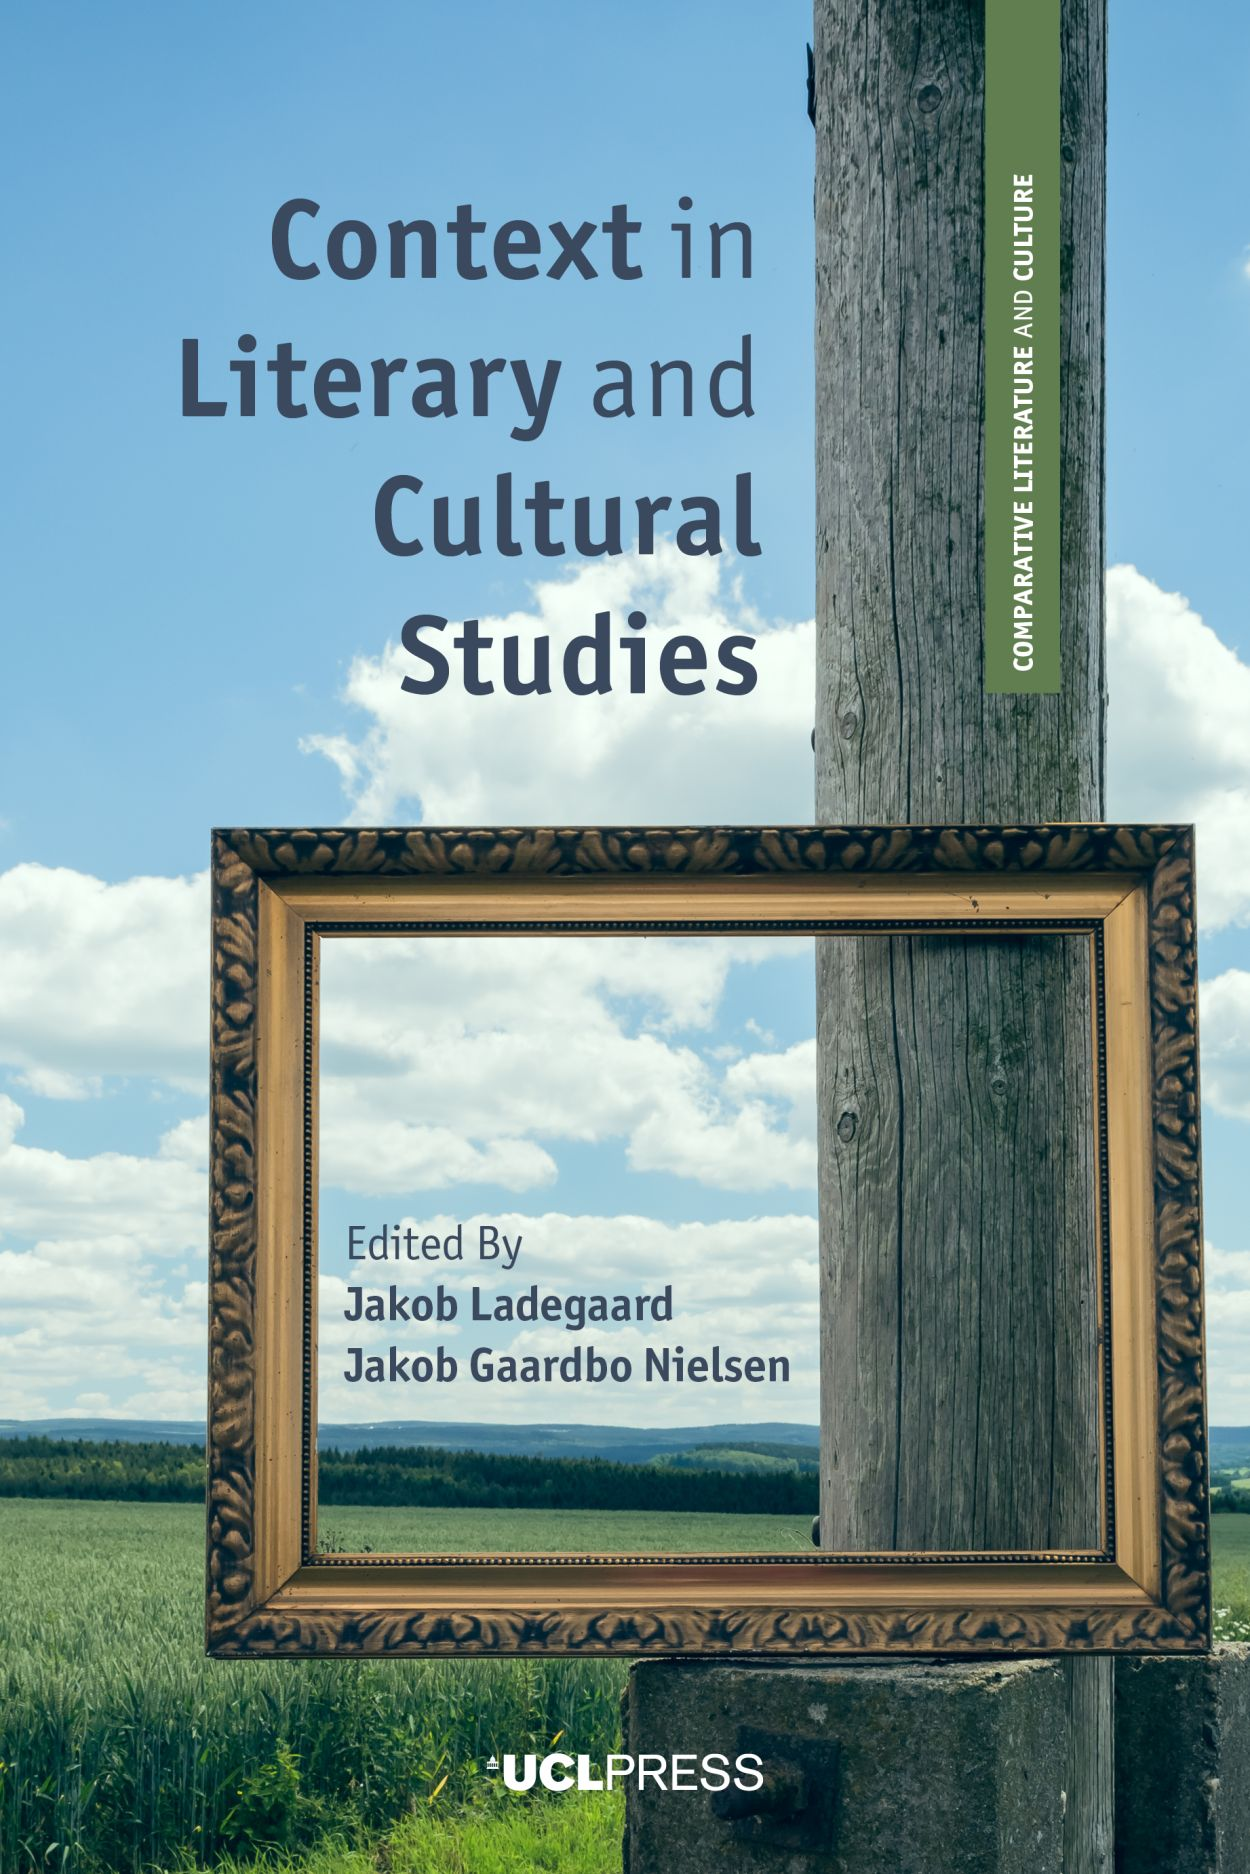 Context in Literary and Cultural Studies